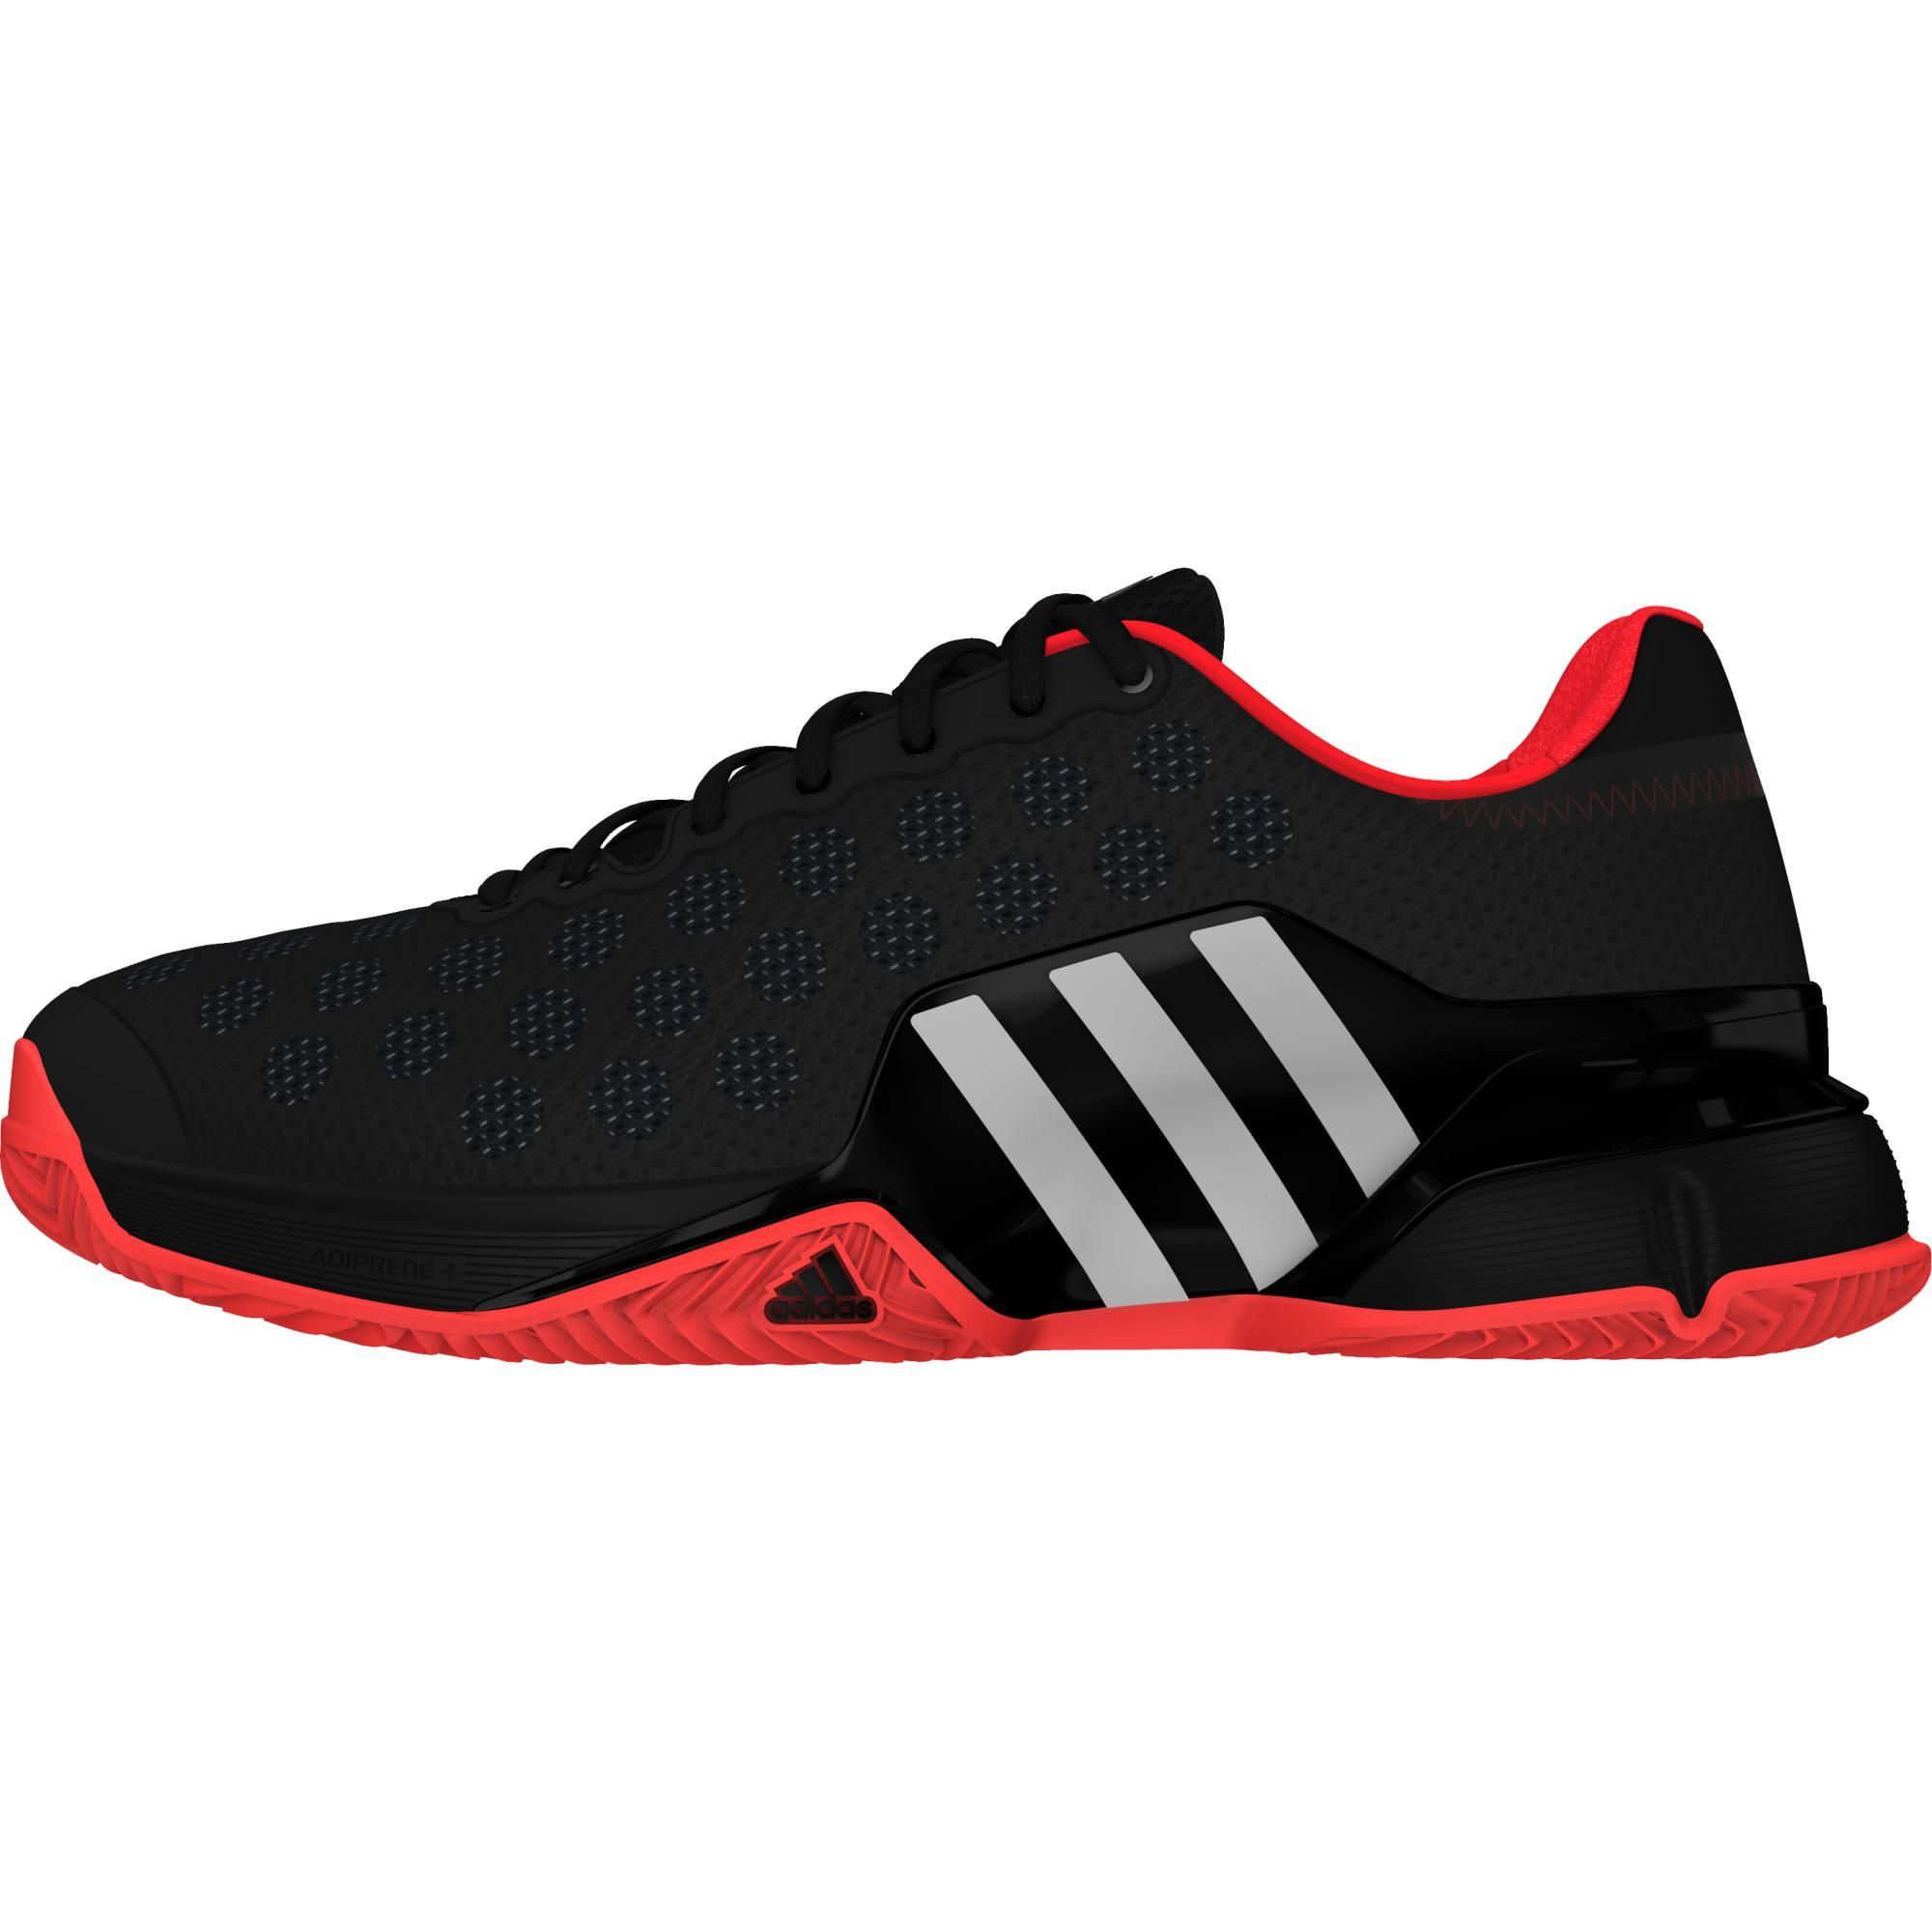 CHAUSSURES DE TENNIS HOMME ADIDAS BARRICADE AUTOMNEHIVER